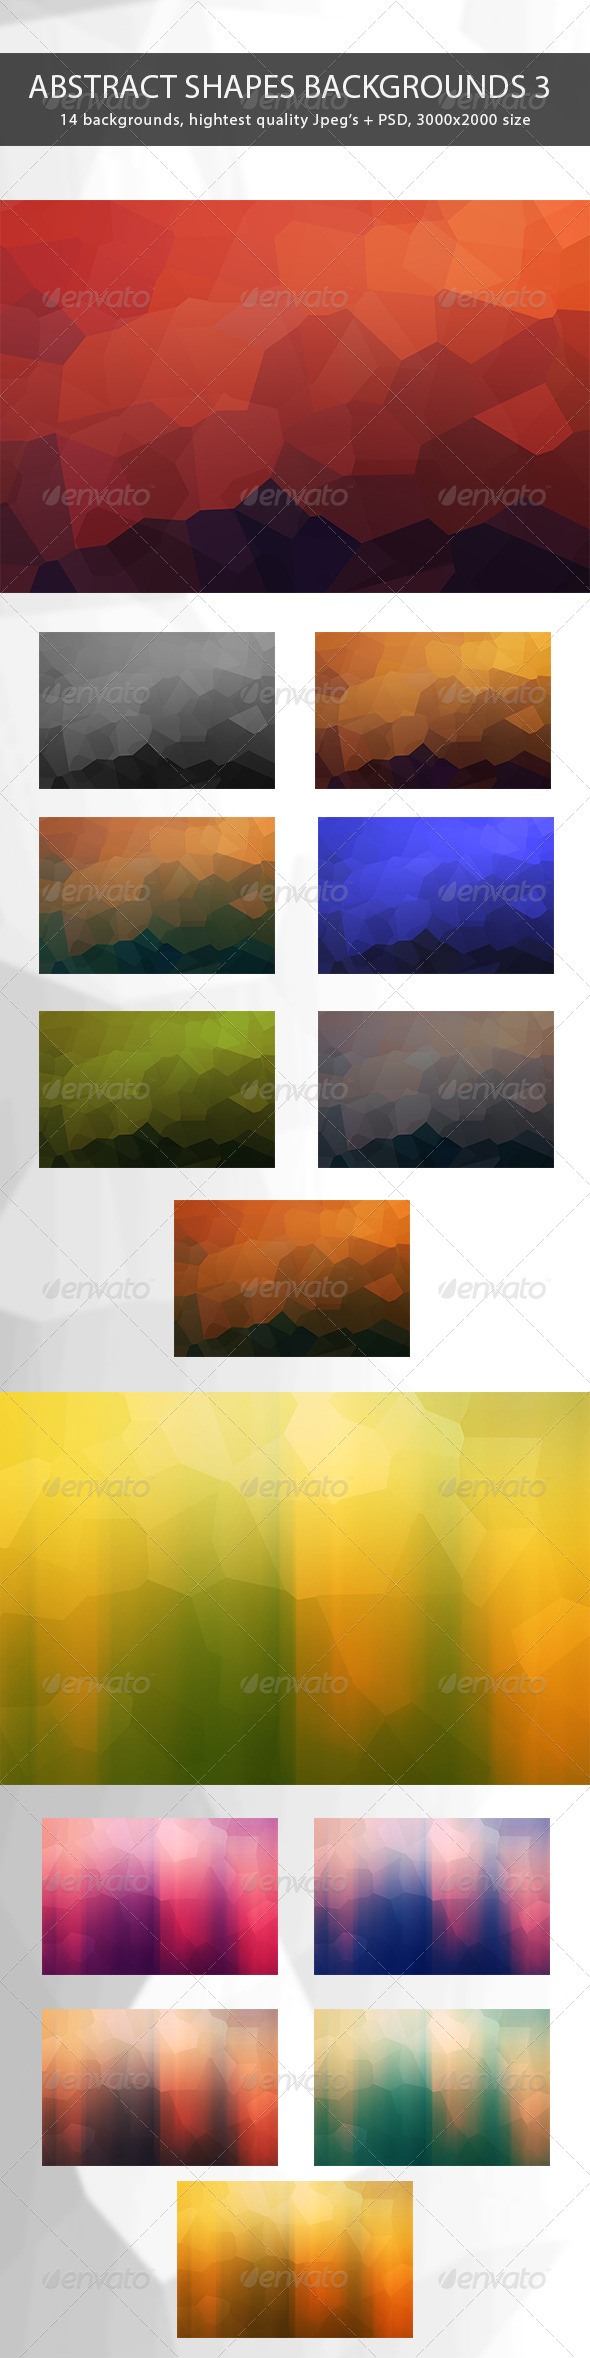 Abstract Shapes Backgrounds 3 - Abstract Backgrounds